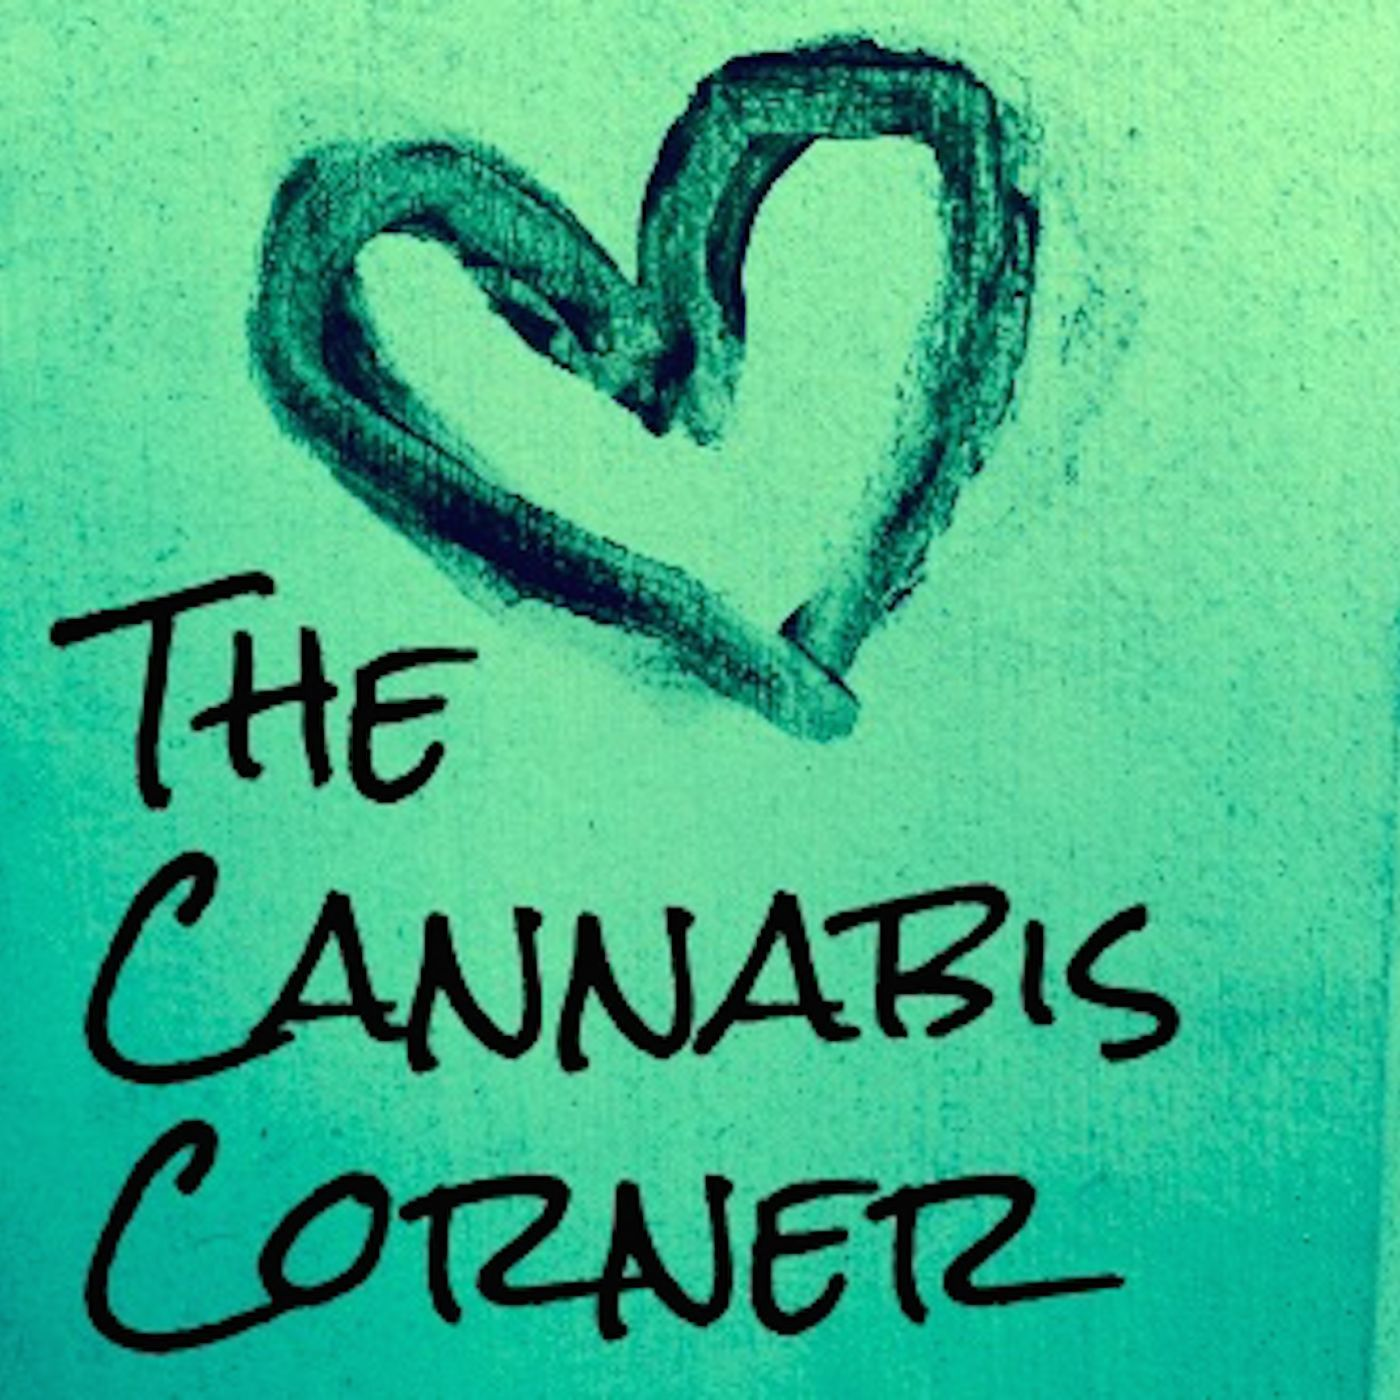 The Cannabis Corner Season 2, Episode 9: Congressional Candidate Amy Vilela, Sara Payan & Danielle Schumacher